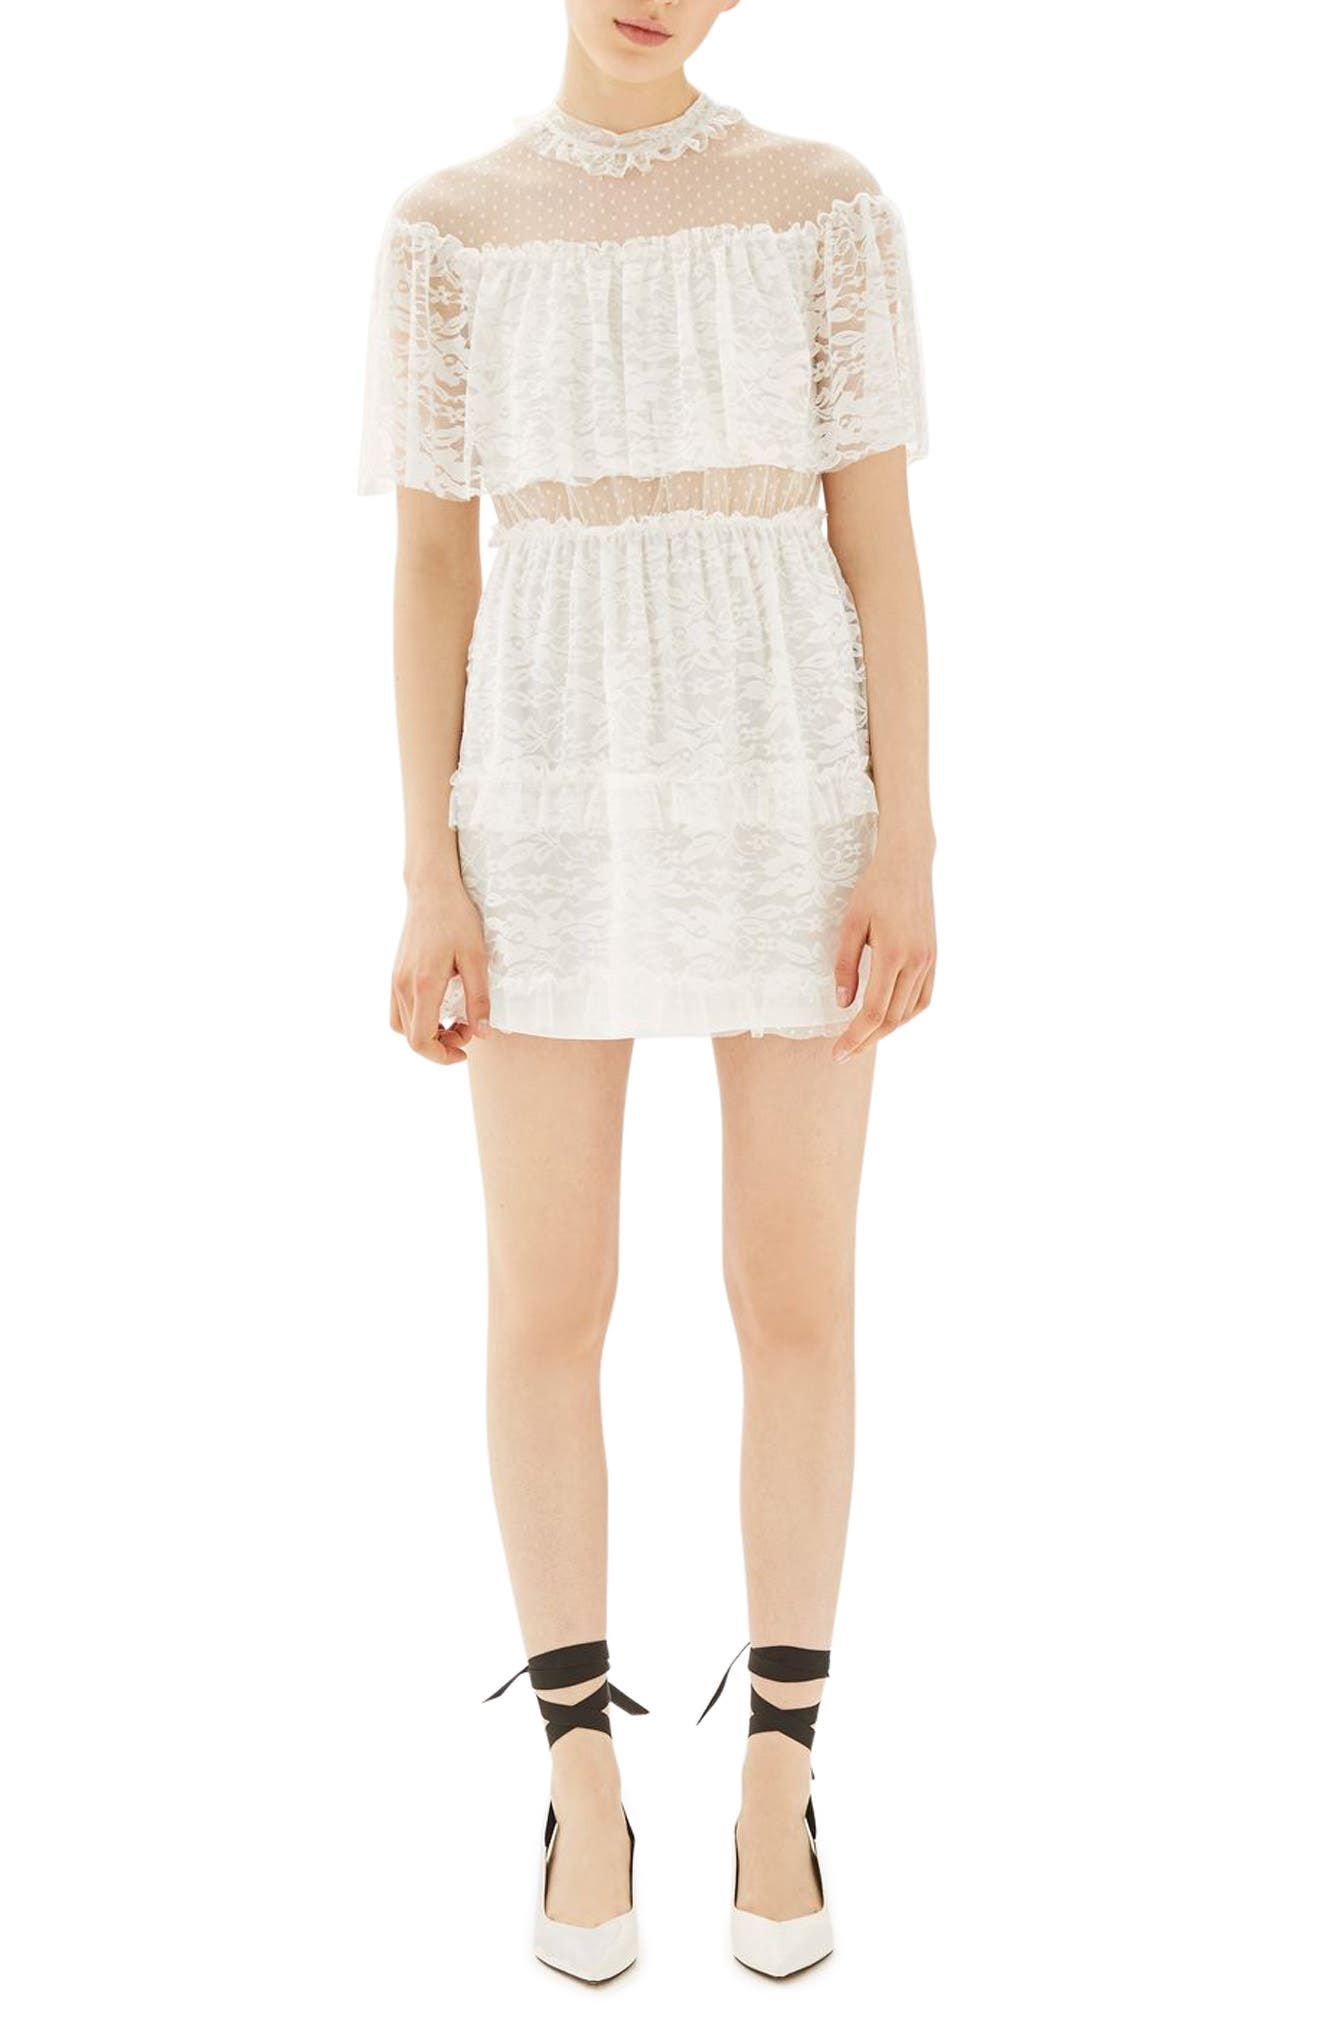 Alternate Image 1 Selected - Topshop Lace Cape Skater Dress